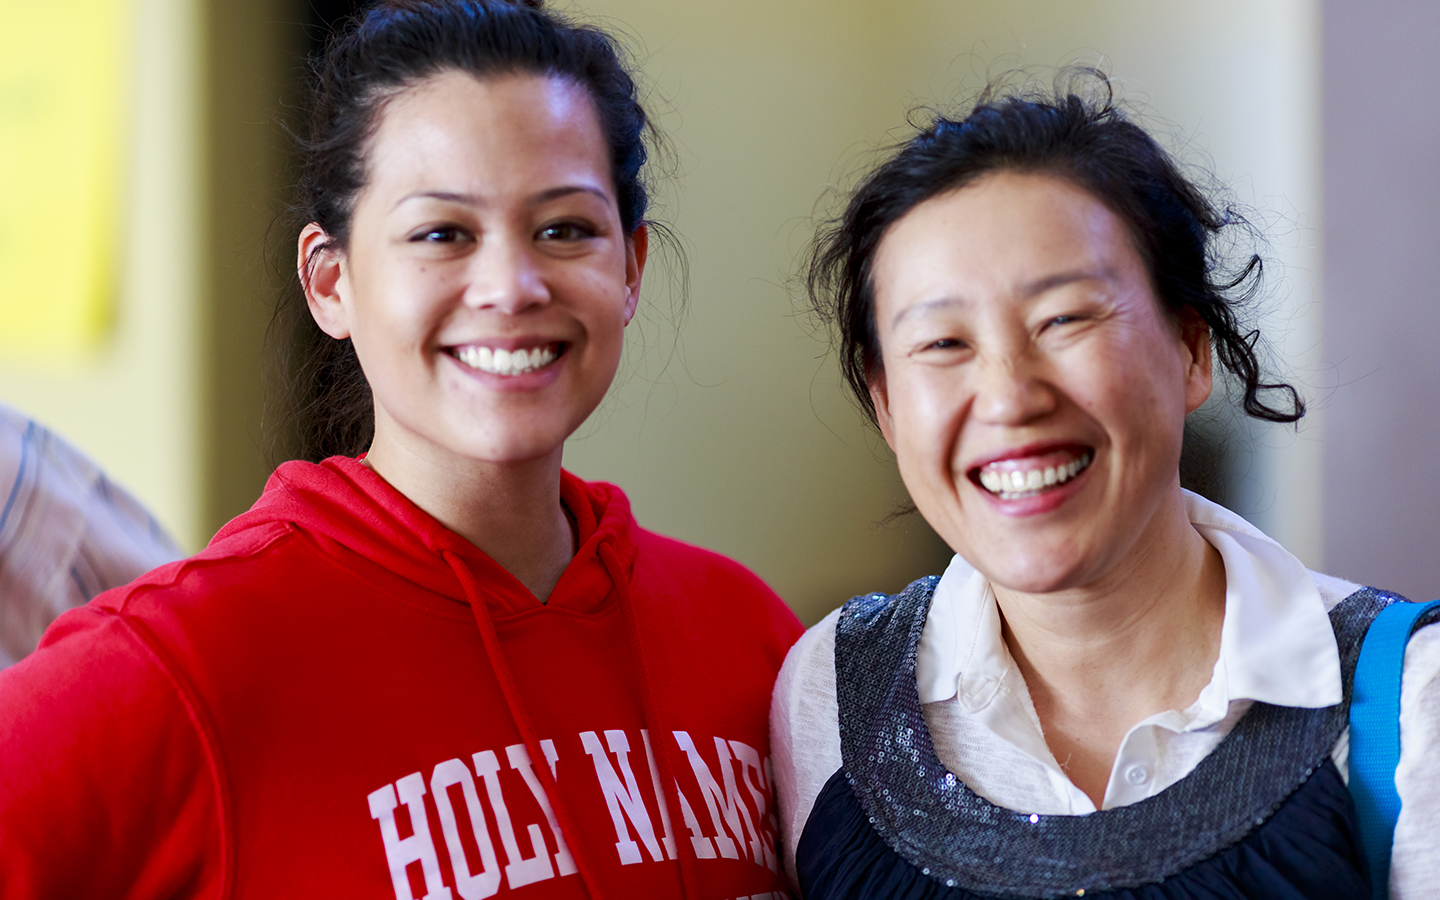 two Holy Names University students smiling